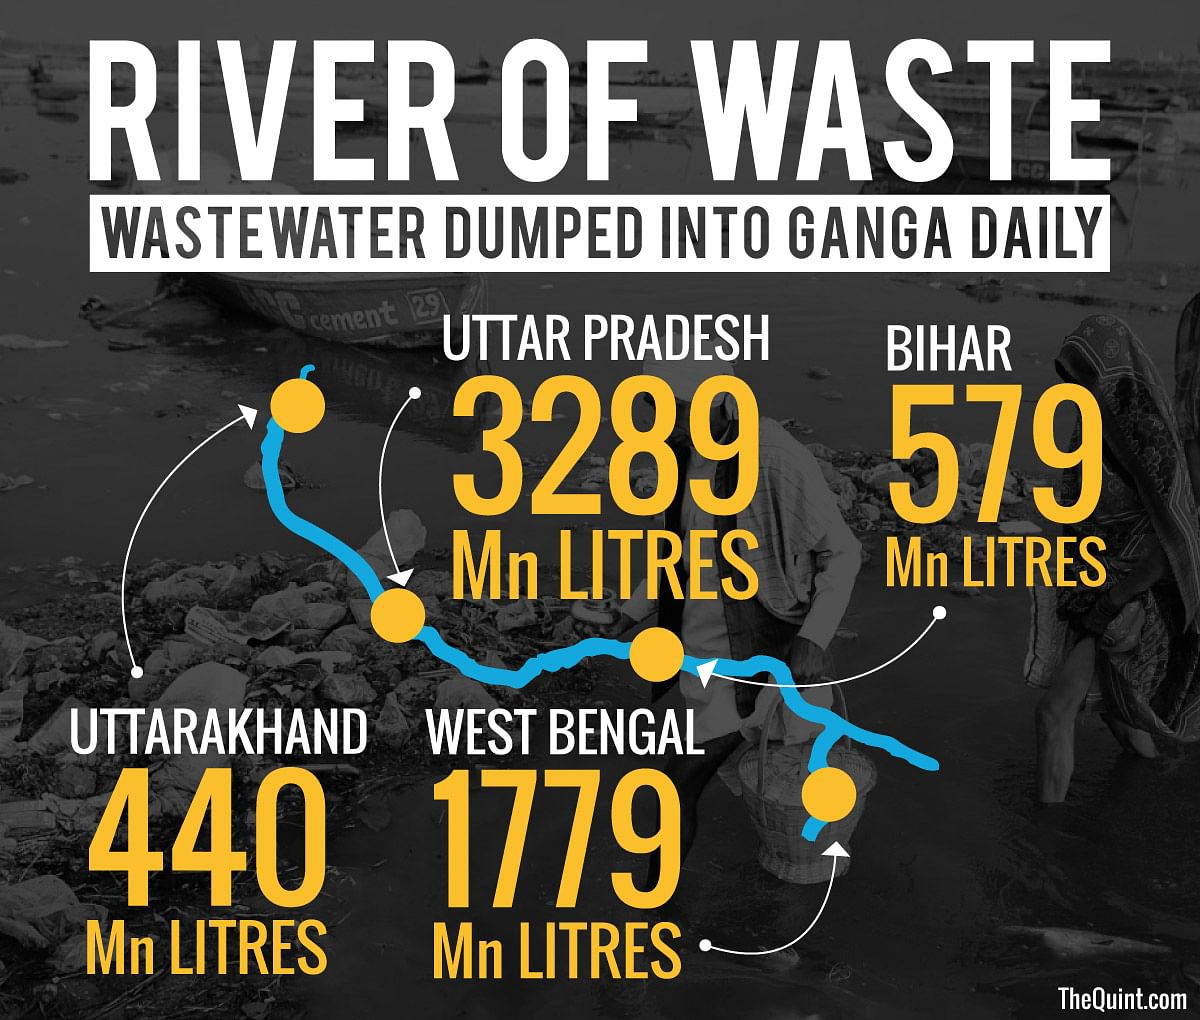 Source: Central Pollution Control Board 2013 report. (Infographic: <b>The Quint</b>/Harsh Sahani)